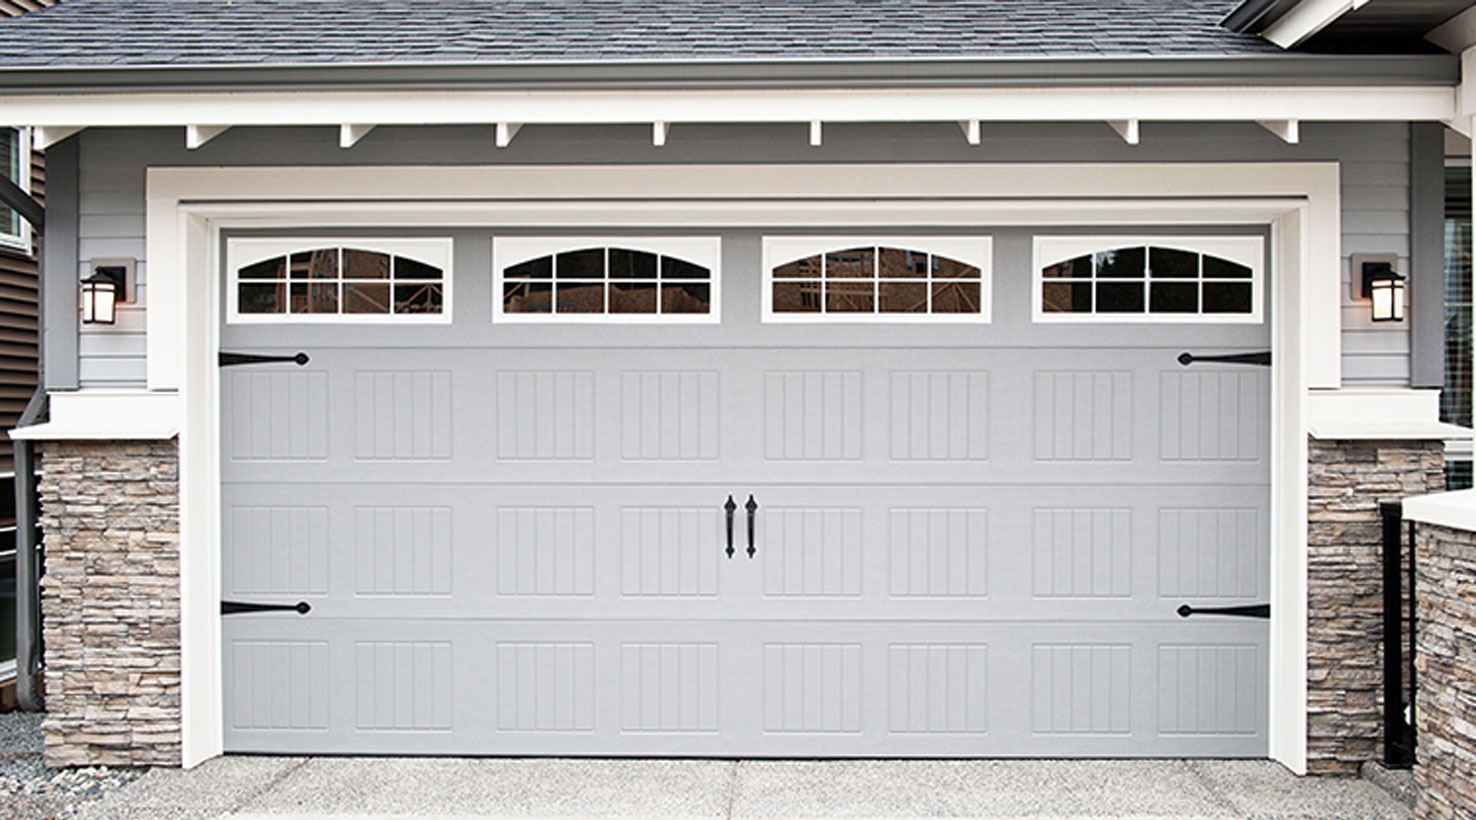 Clopay garage door colors sherwin williams wageuzi Clopay garage door colors